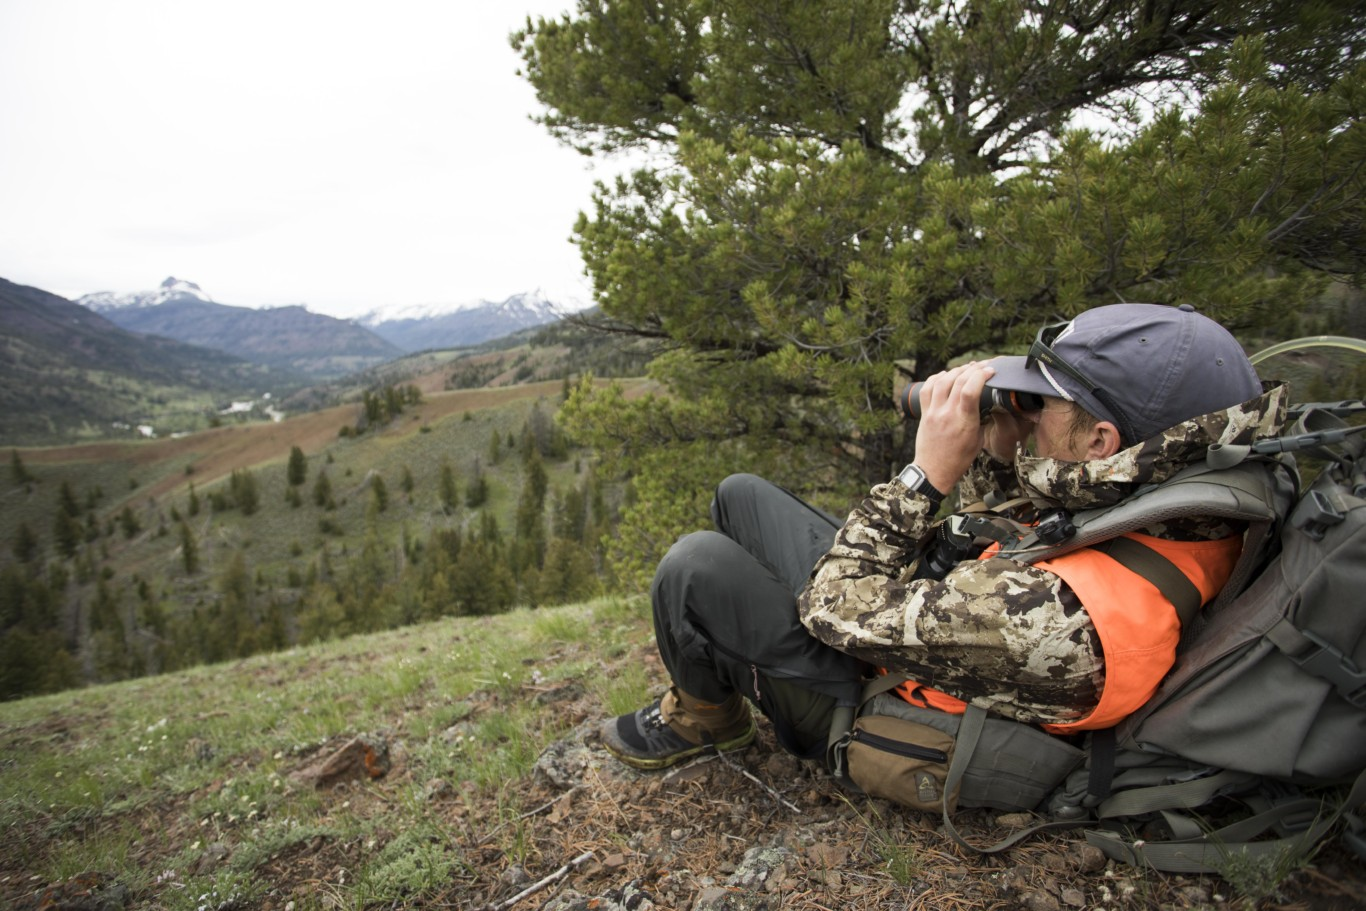 Landon Blanchard watches a grizzly bear in Wyoming - Photo by: Christian Baumeister